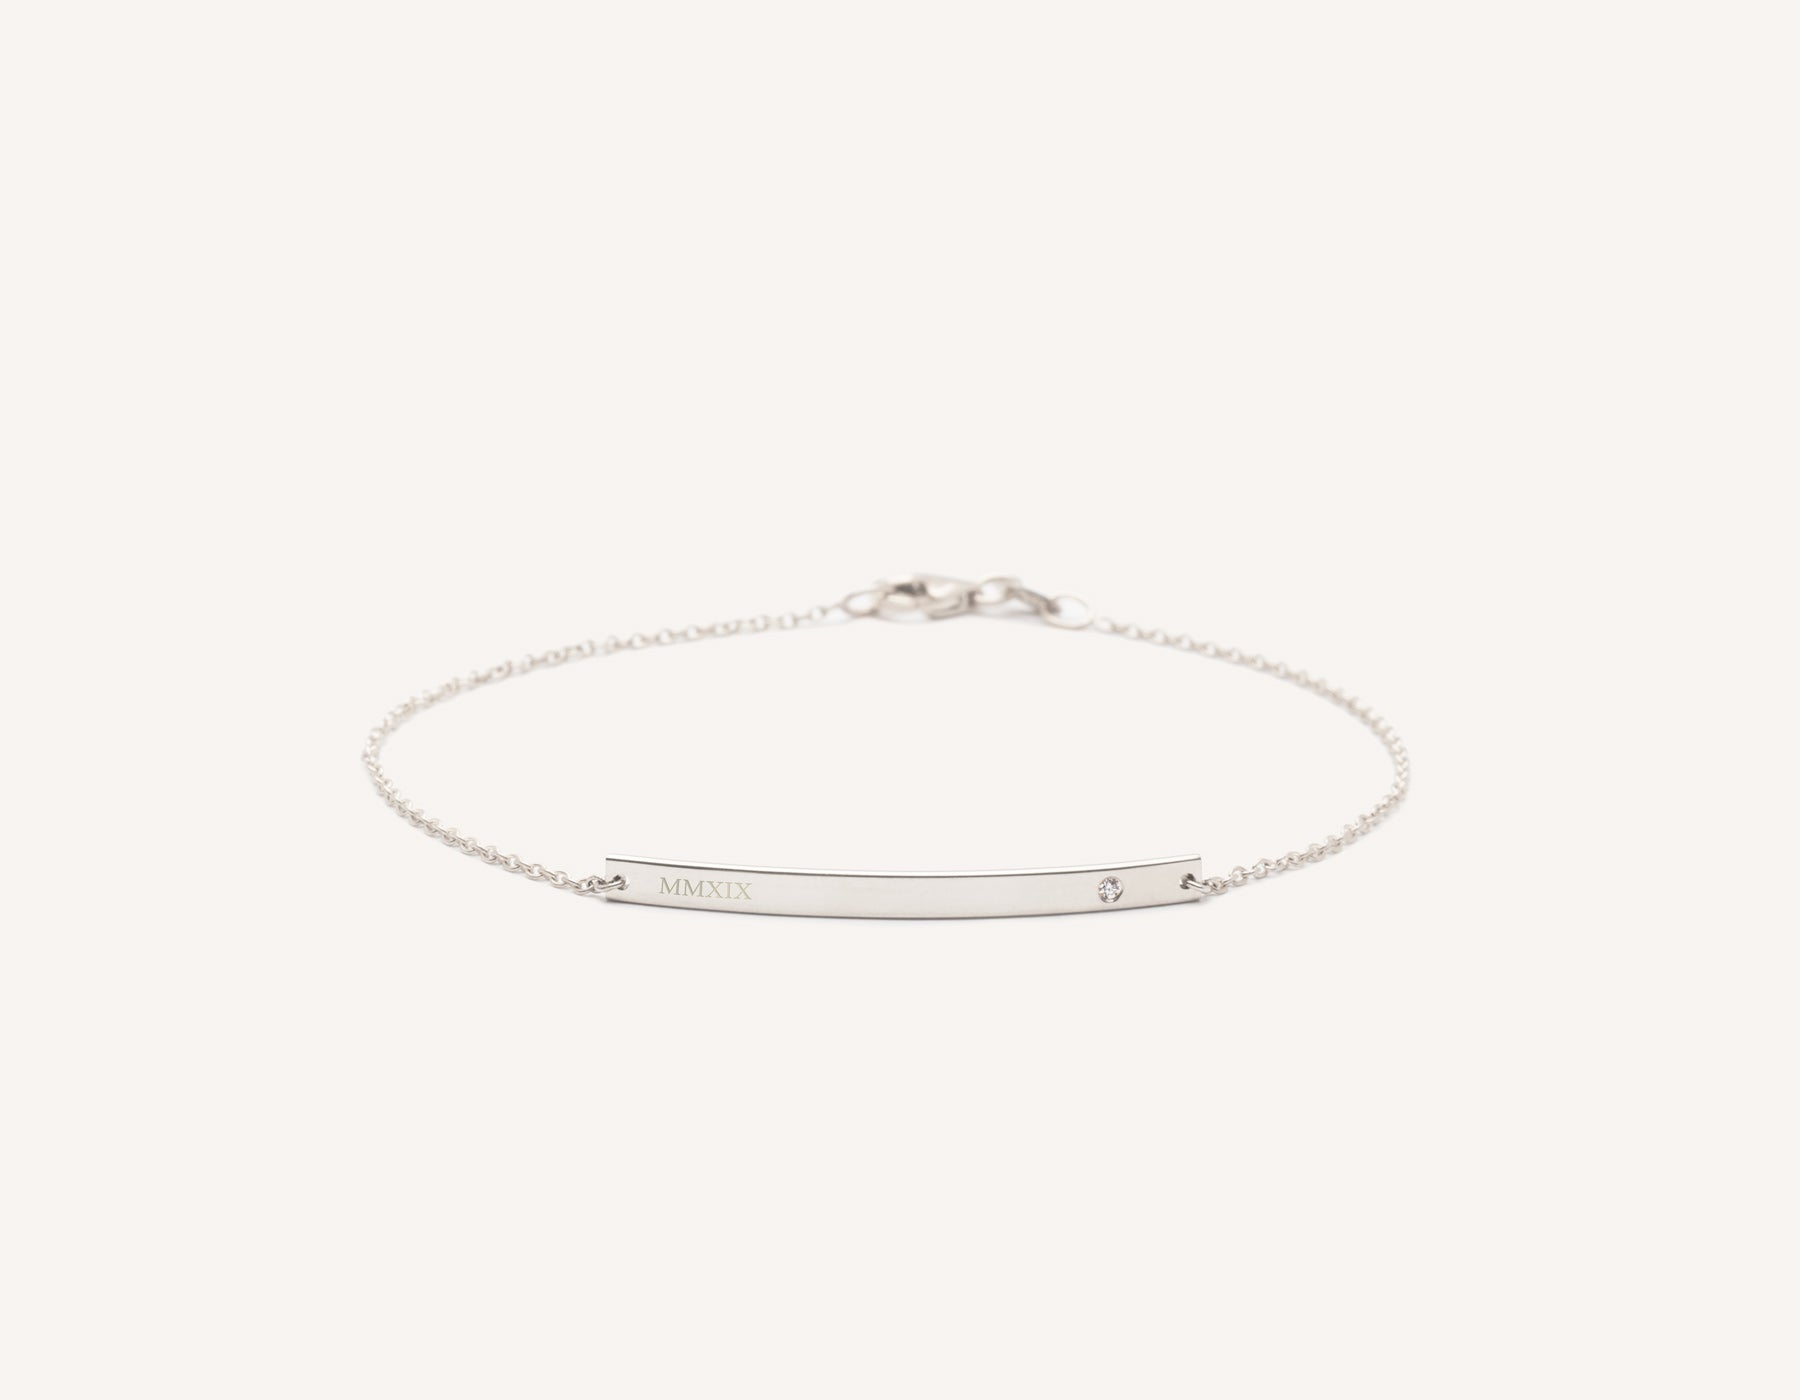 Engraved simple 14k Solid Gold Bar Bracelet with small diamond on minimalist chain with lobster clasp Vrai and Oro, 14K White Gold